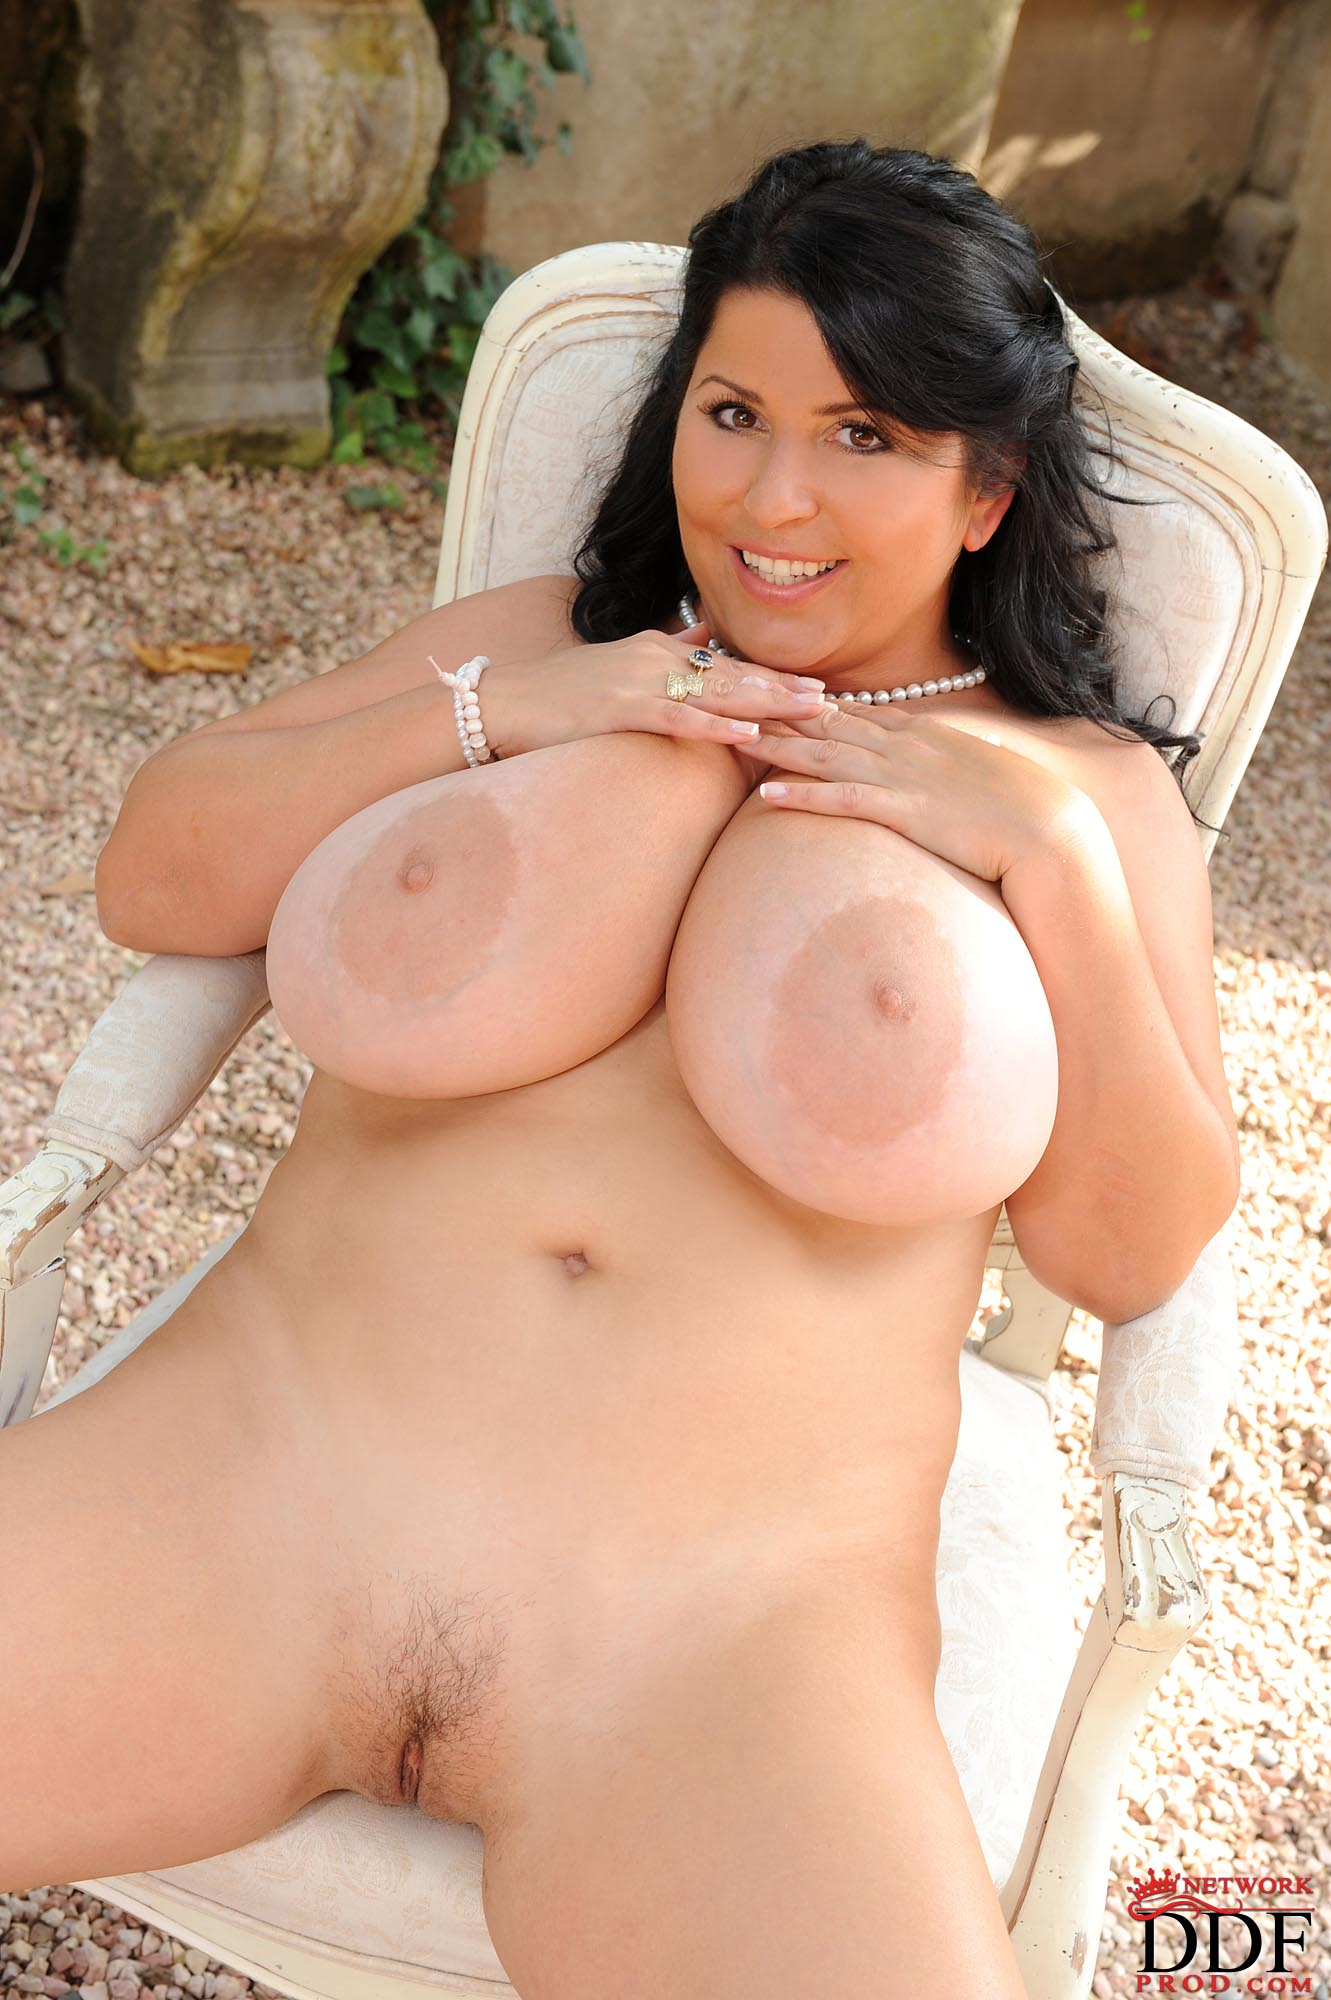 Natalie fiore xxx A.J. and